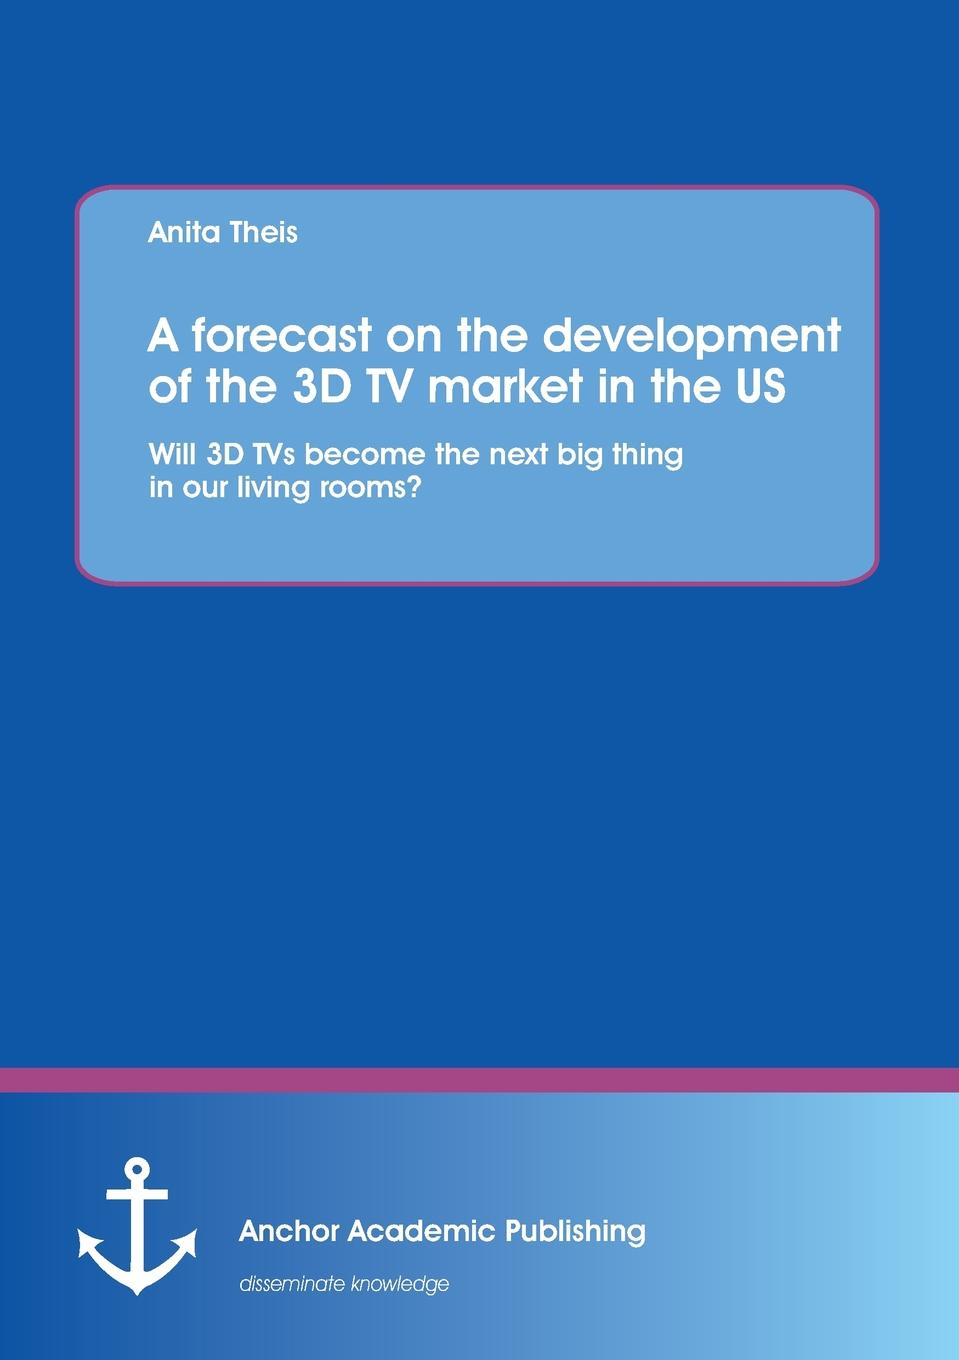 Anita Theis A Forecast on the Development of the 3D TV Market in the Us. Will 3D TVs Become the Next Big Thing in Our Living Rooms. demystifying learning traps in a new product innovation process